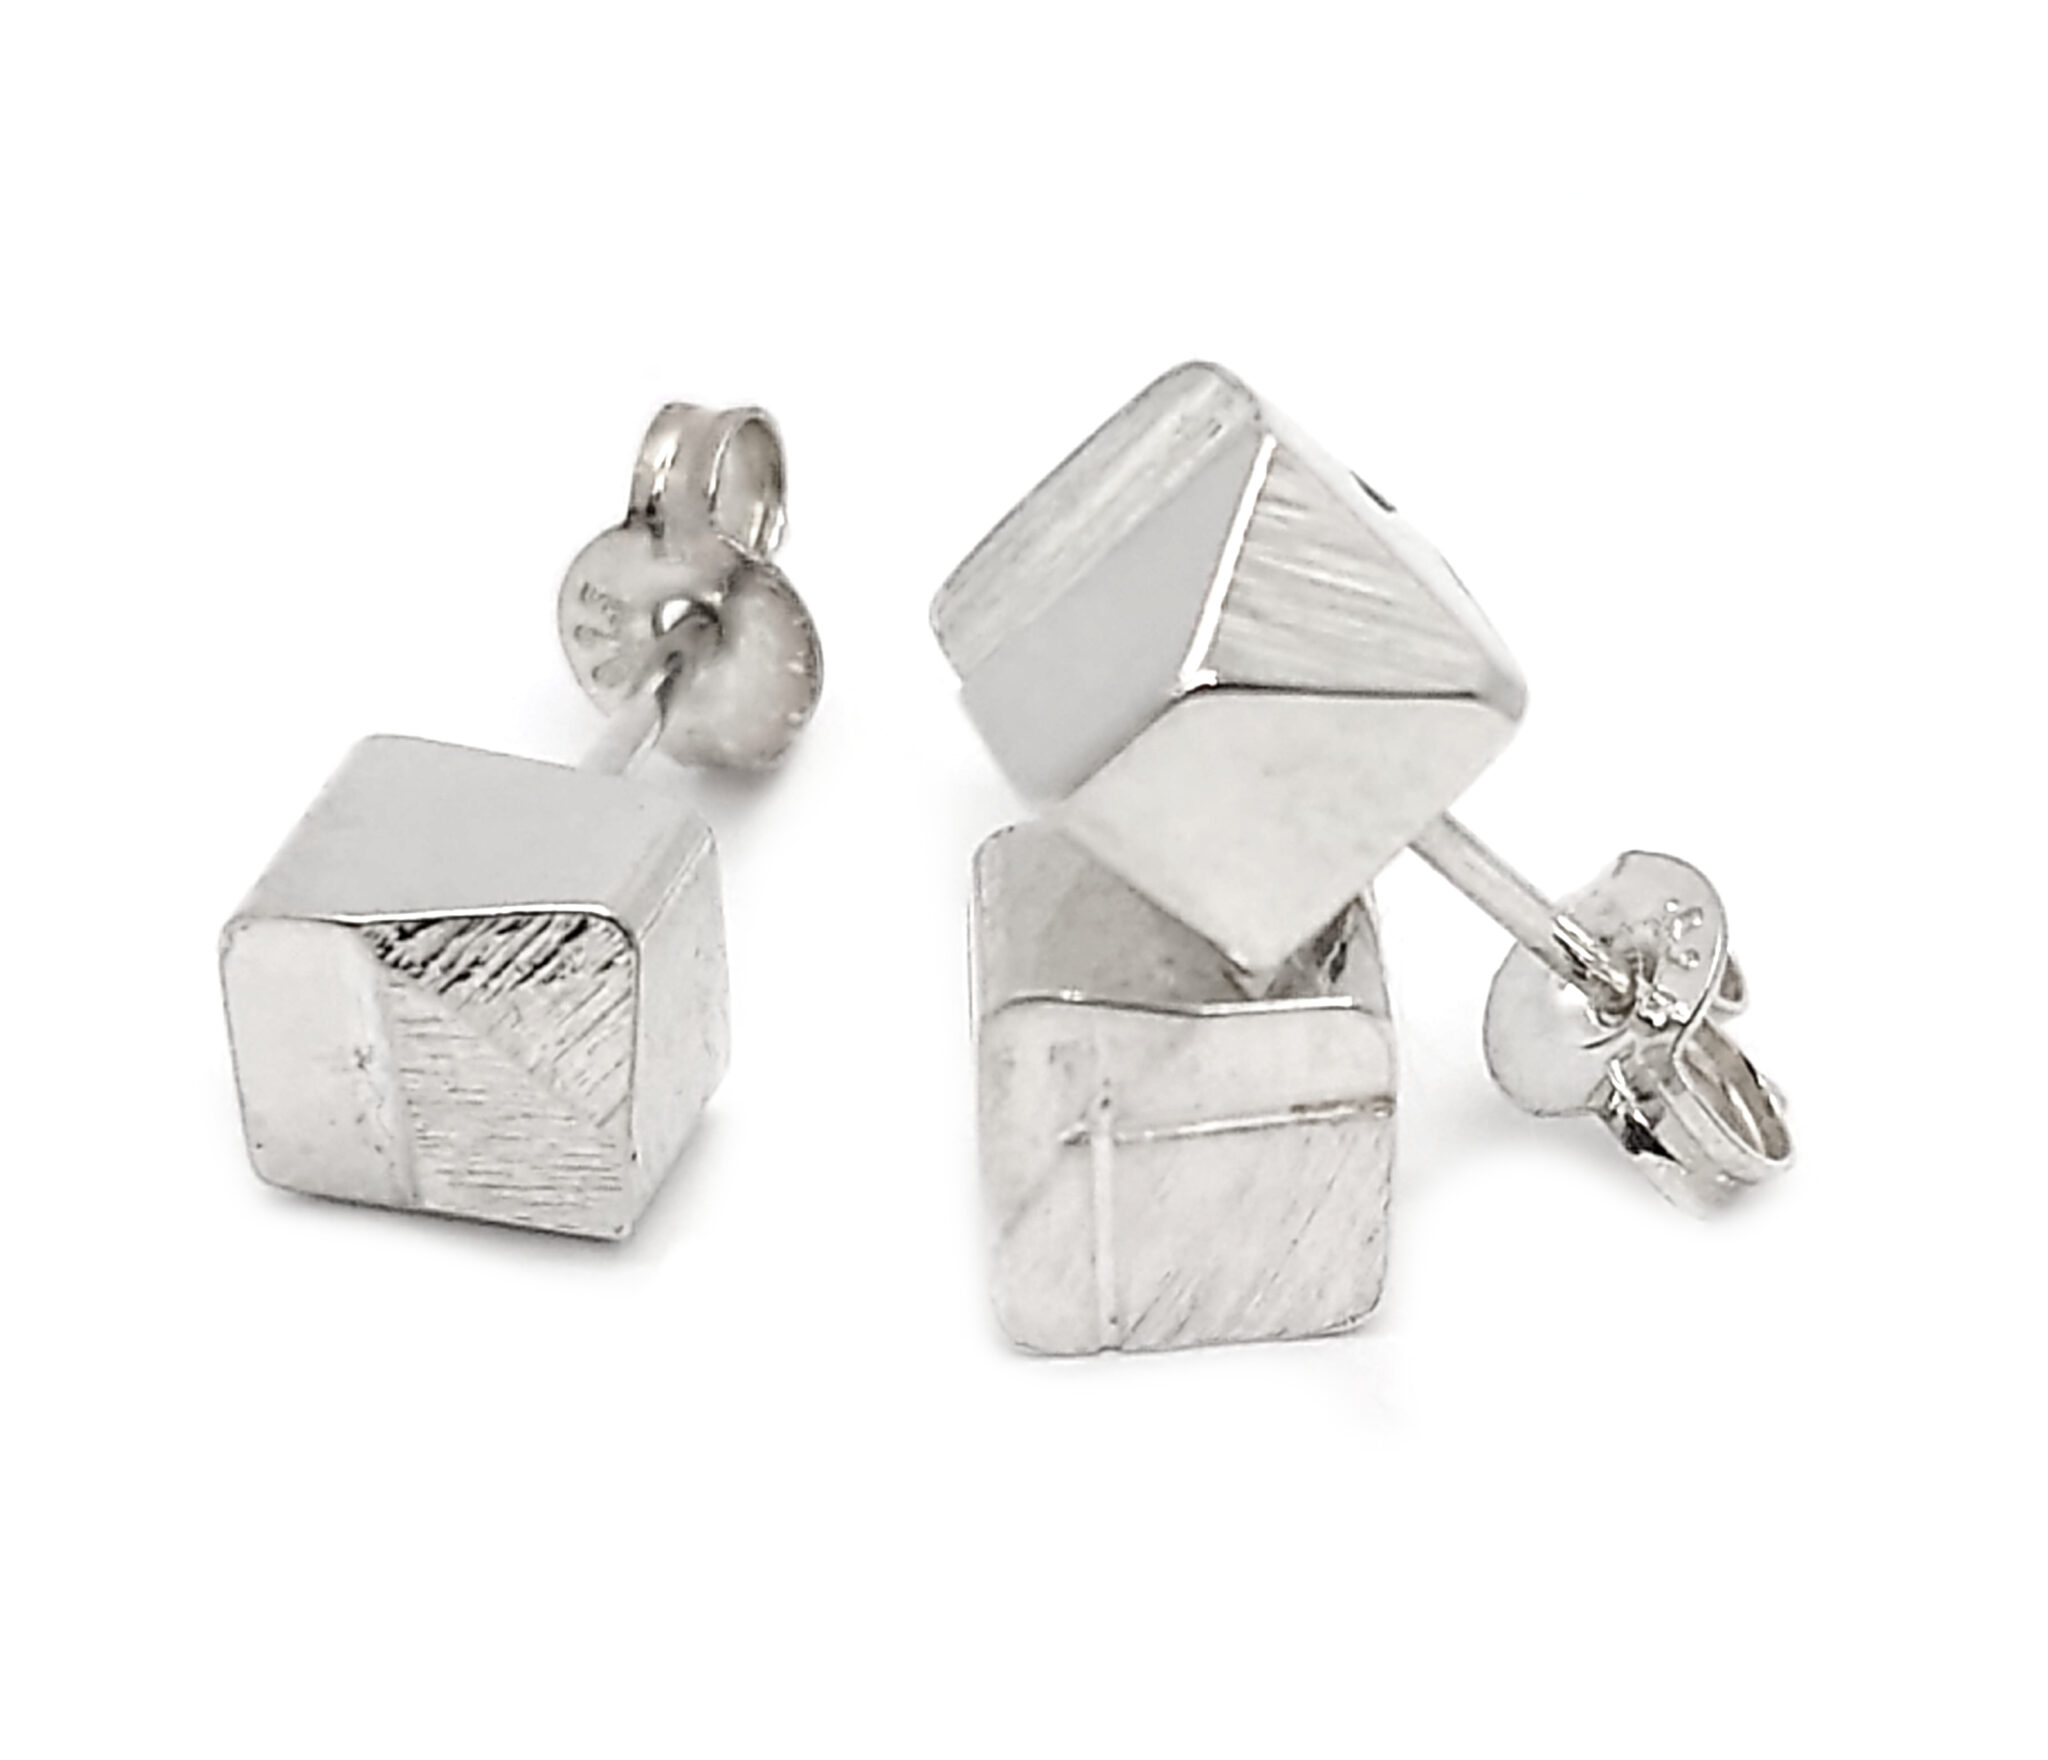 EDGE Square Stud Earring Single, Sterling Silver By R-Process